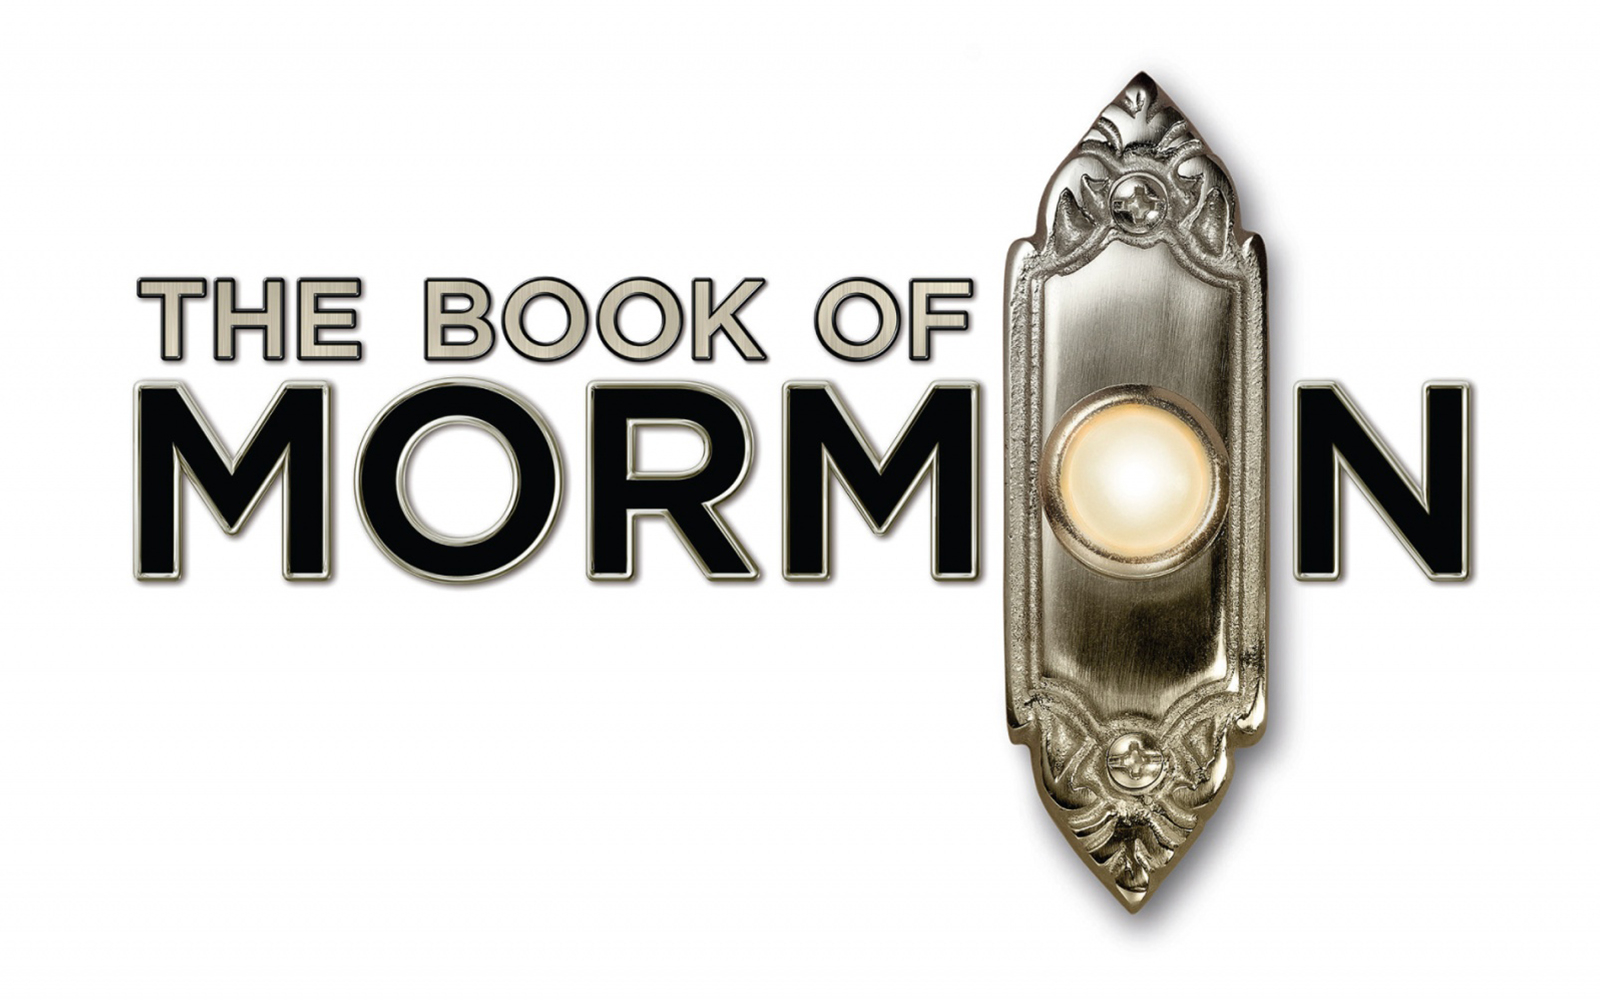 F649650e 7ed4 4325 8824 2c49b7ec101f 730 new york the book of mormon 01